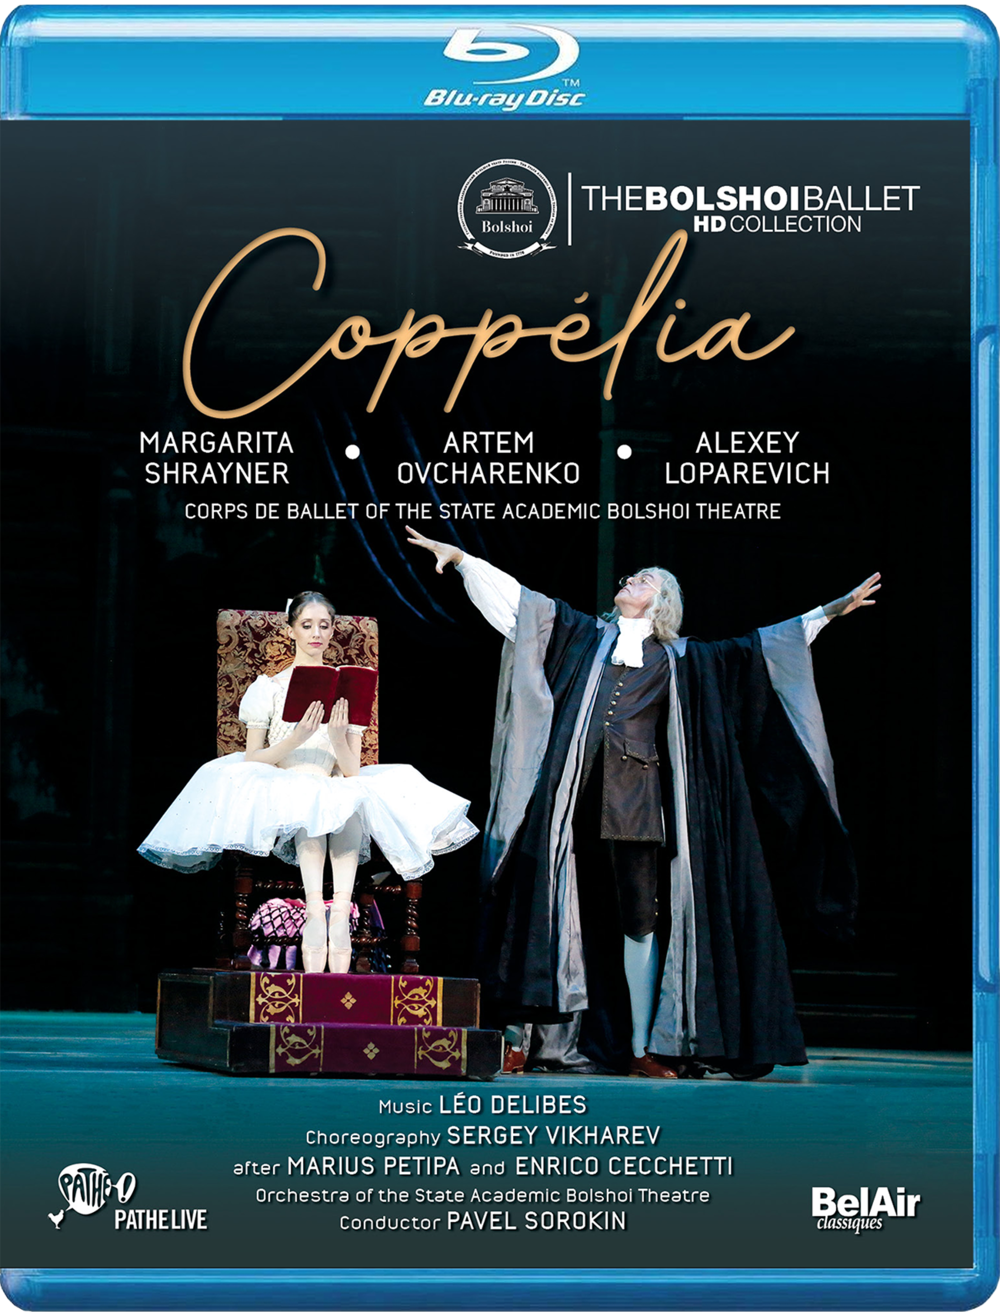 bac463-coverbluray-coppliarecto.png